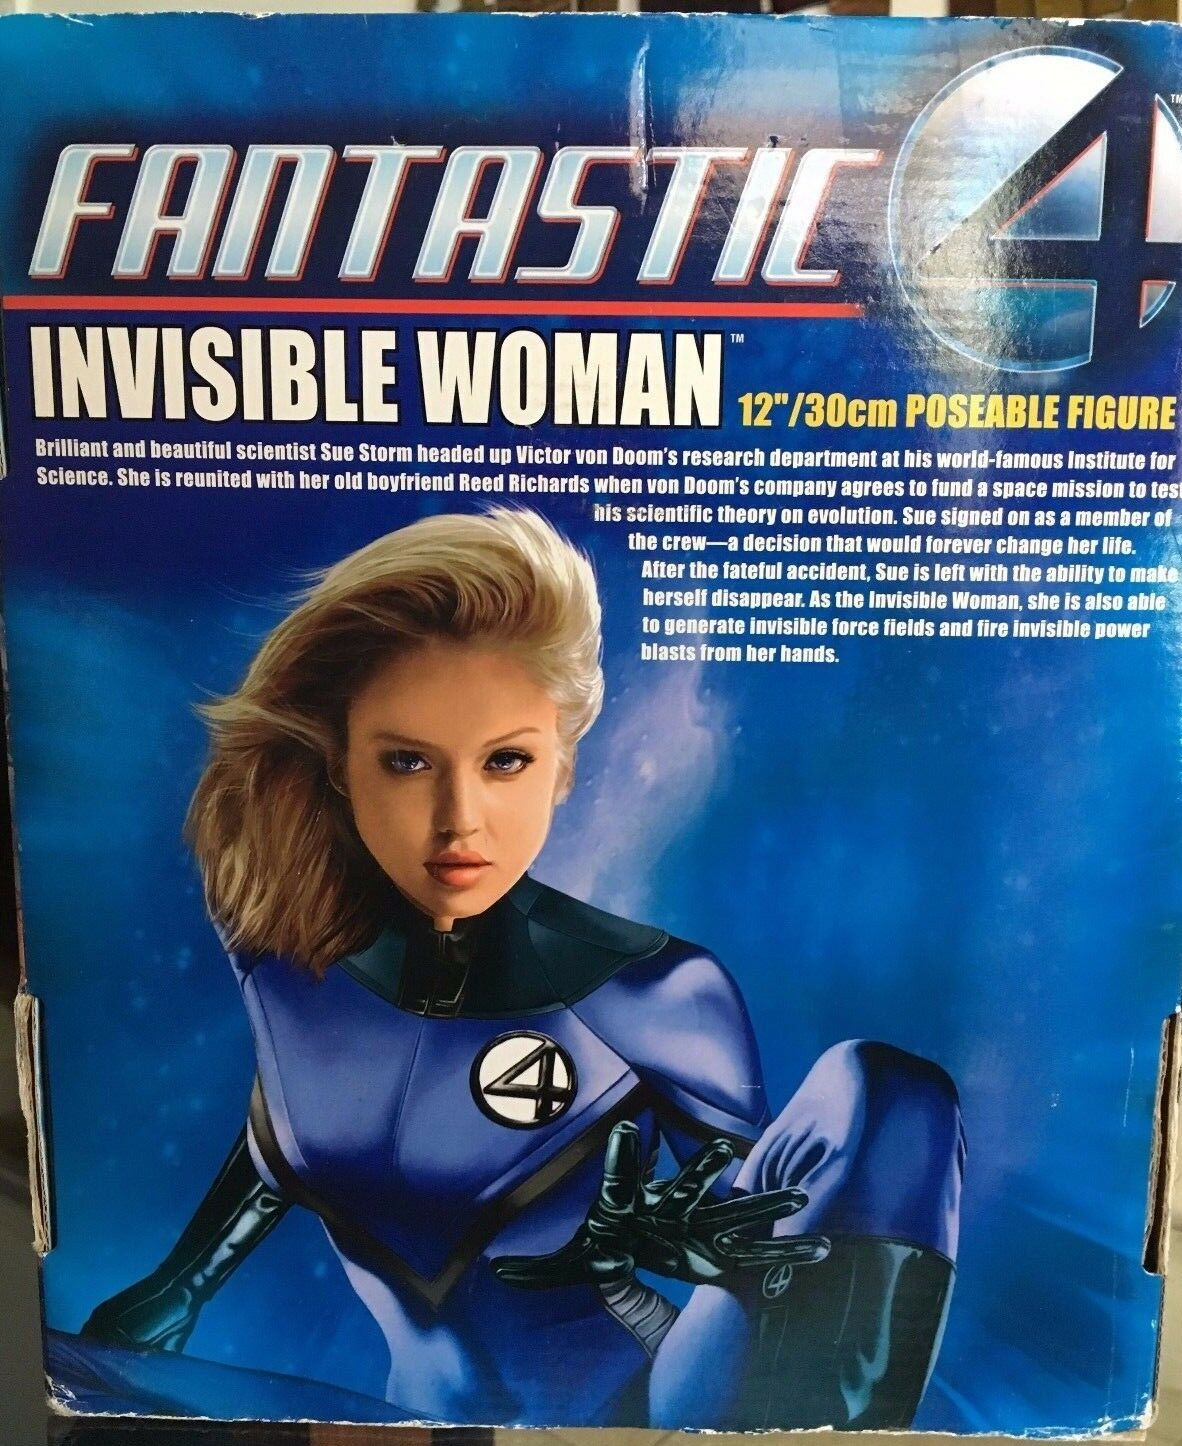 Fantastic 4 4 4 INVISIBLE WOMAN 12 Poseable Figure 539a82